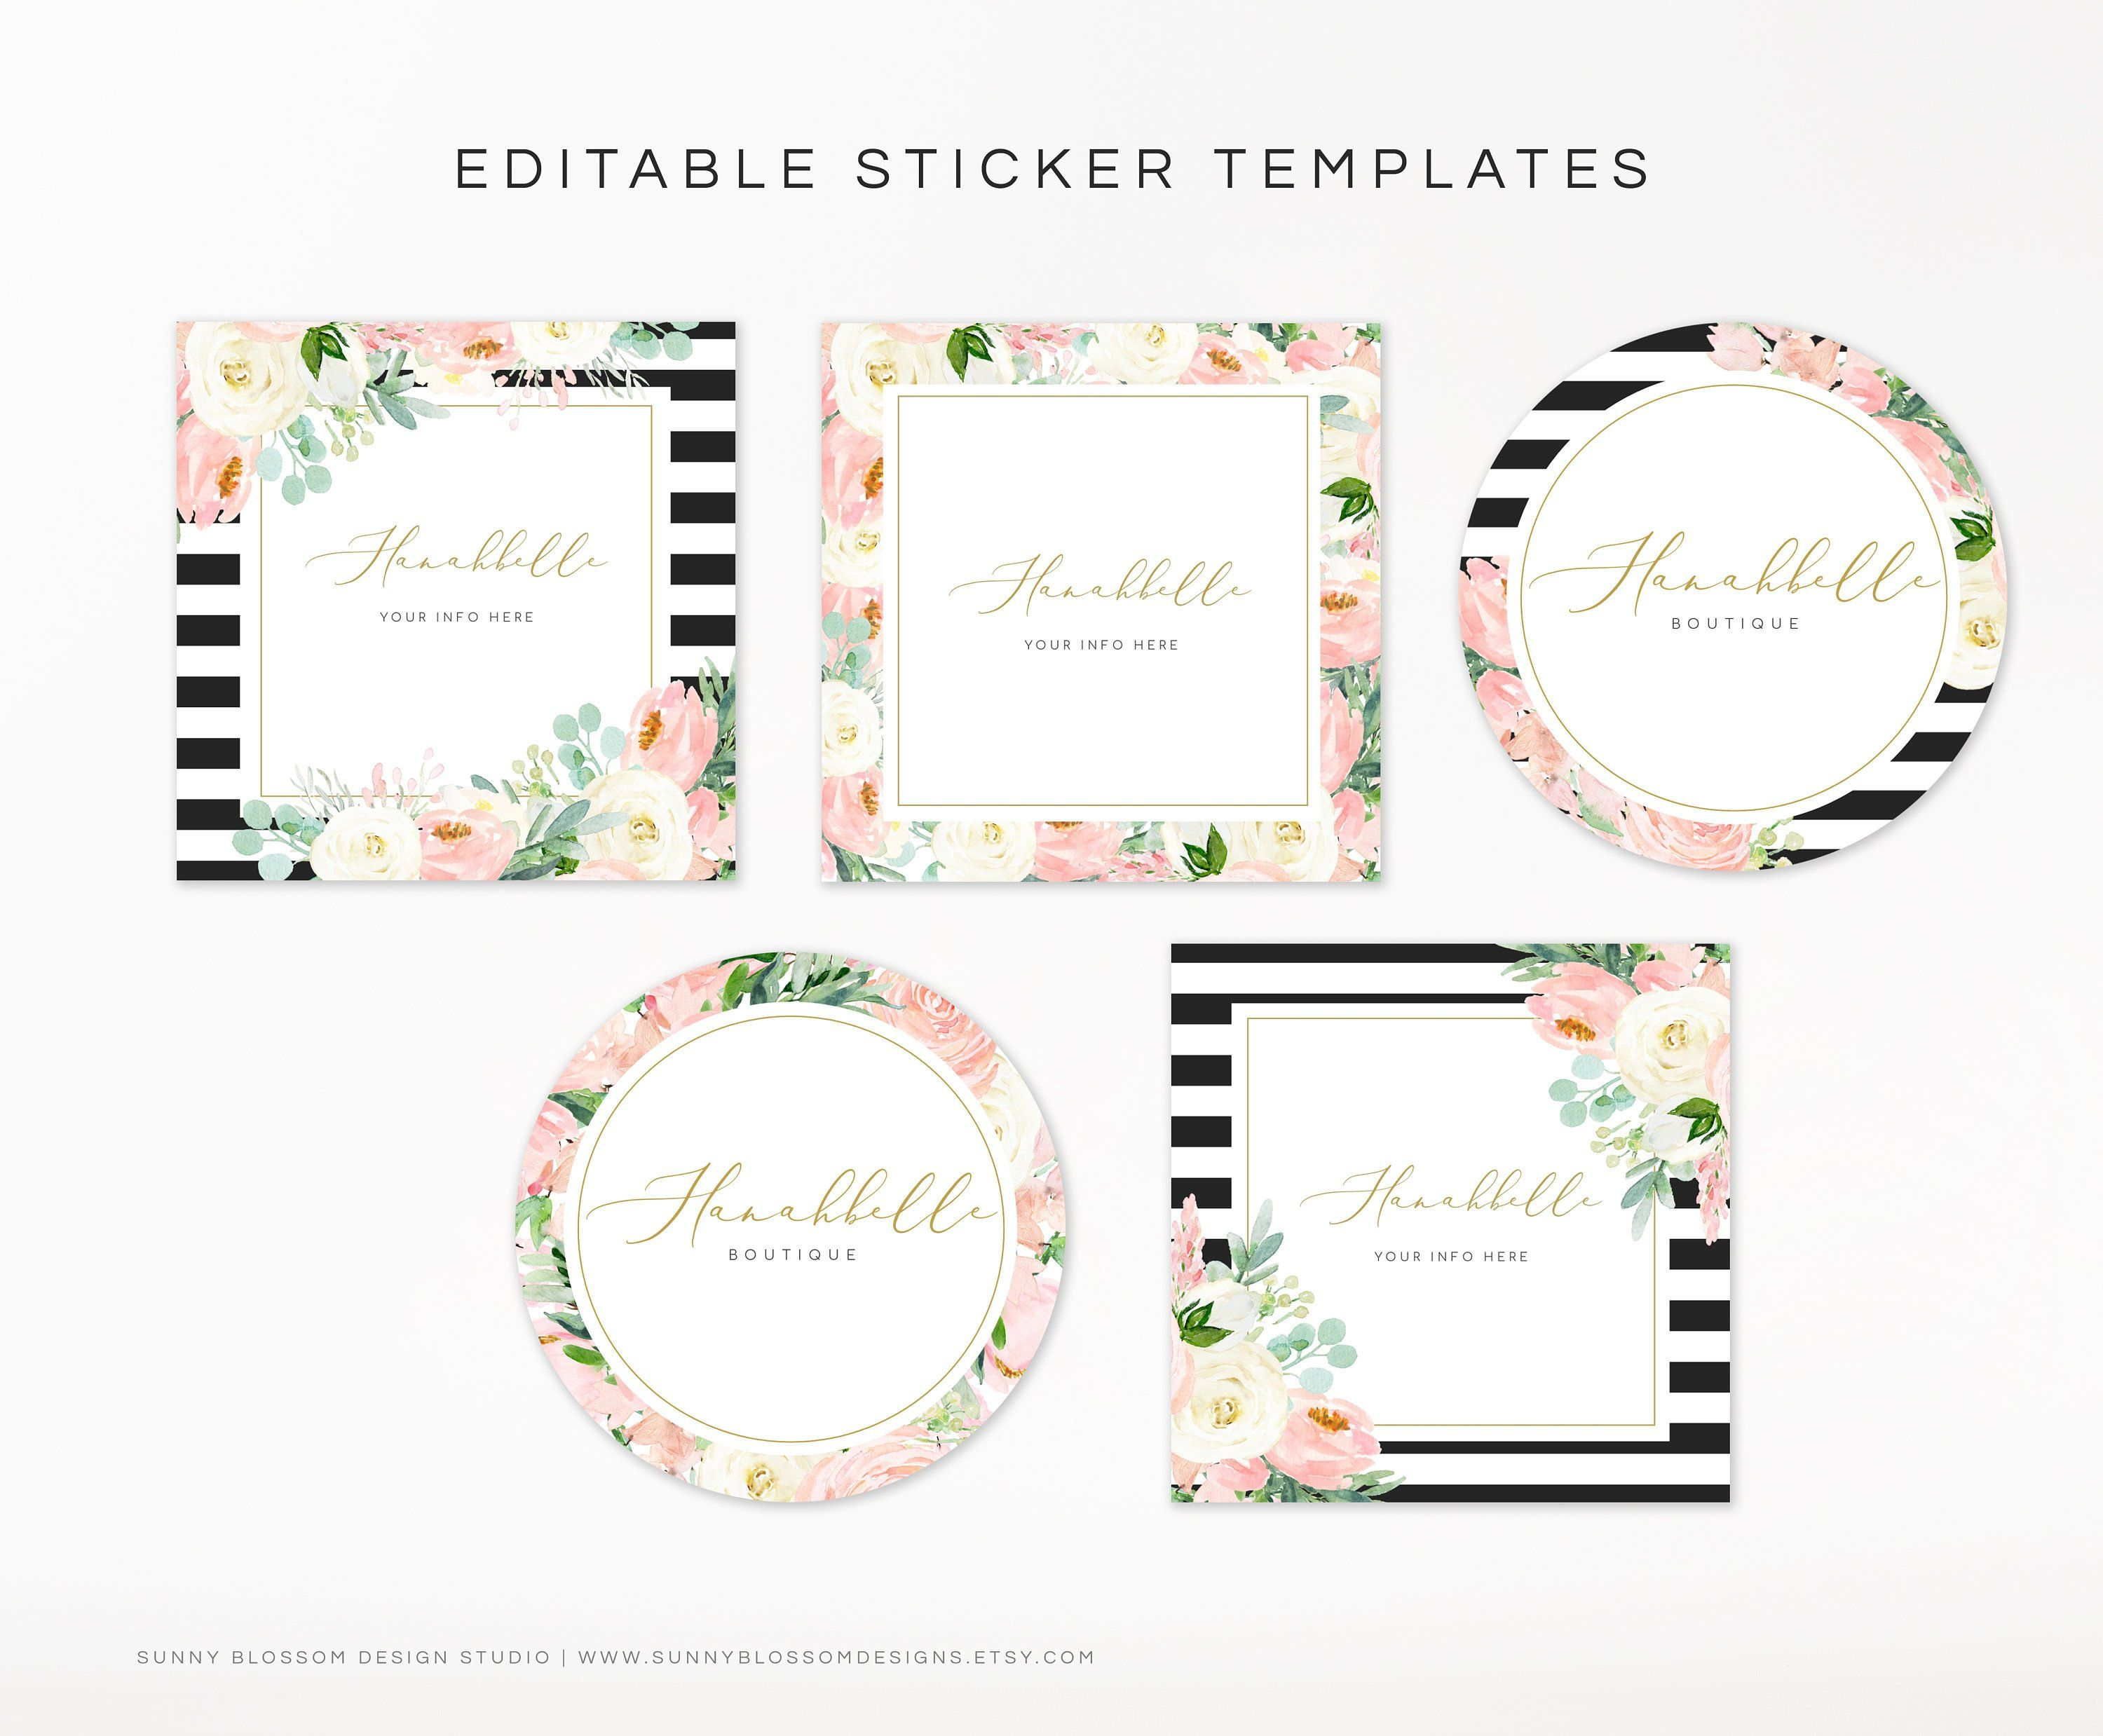 Editable Free Printable Sticker Templates